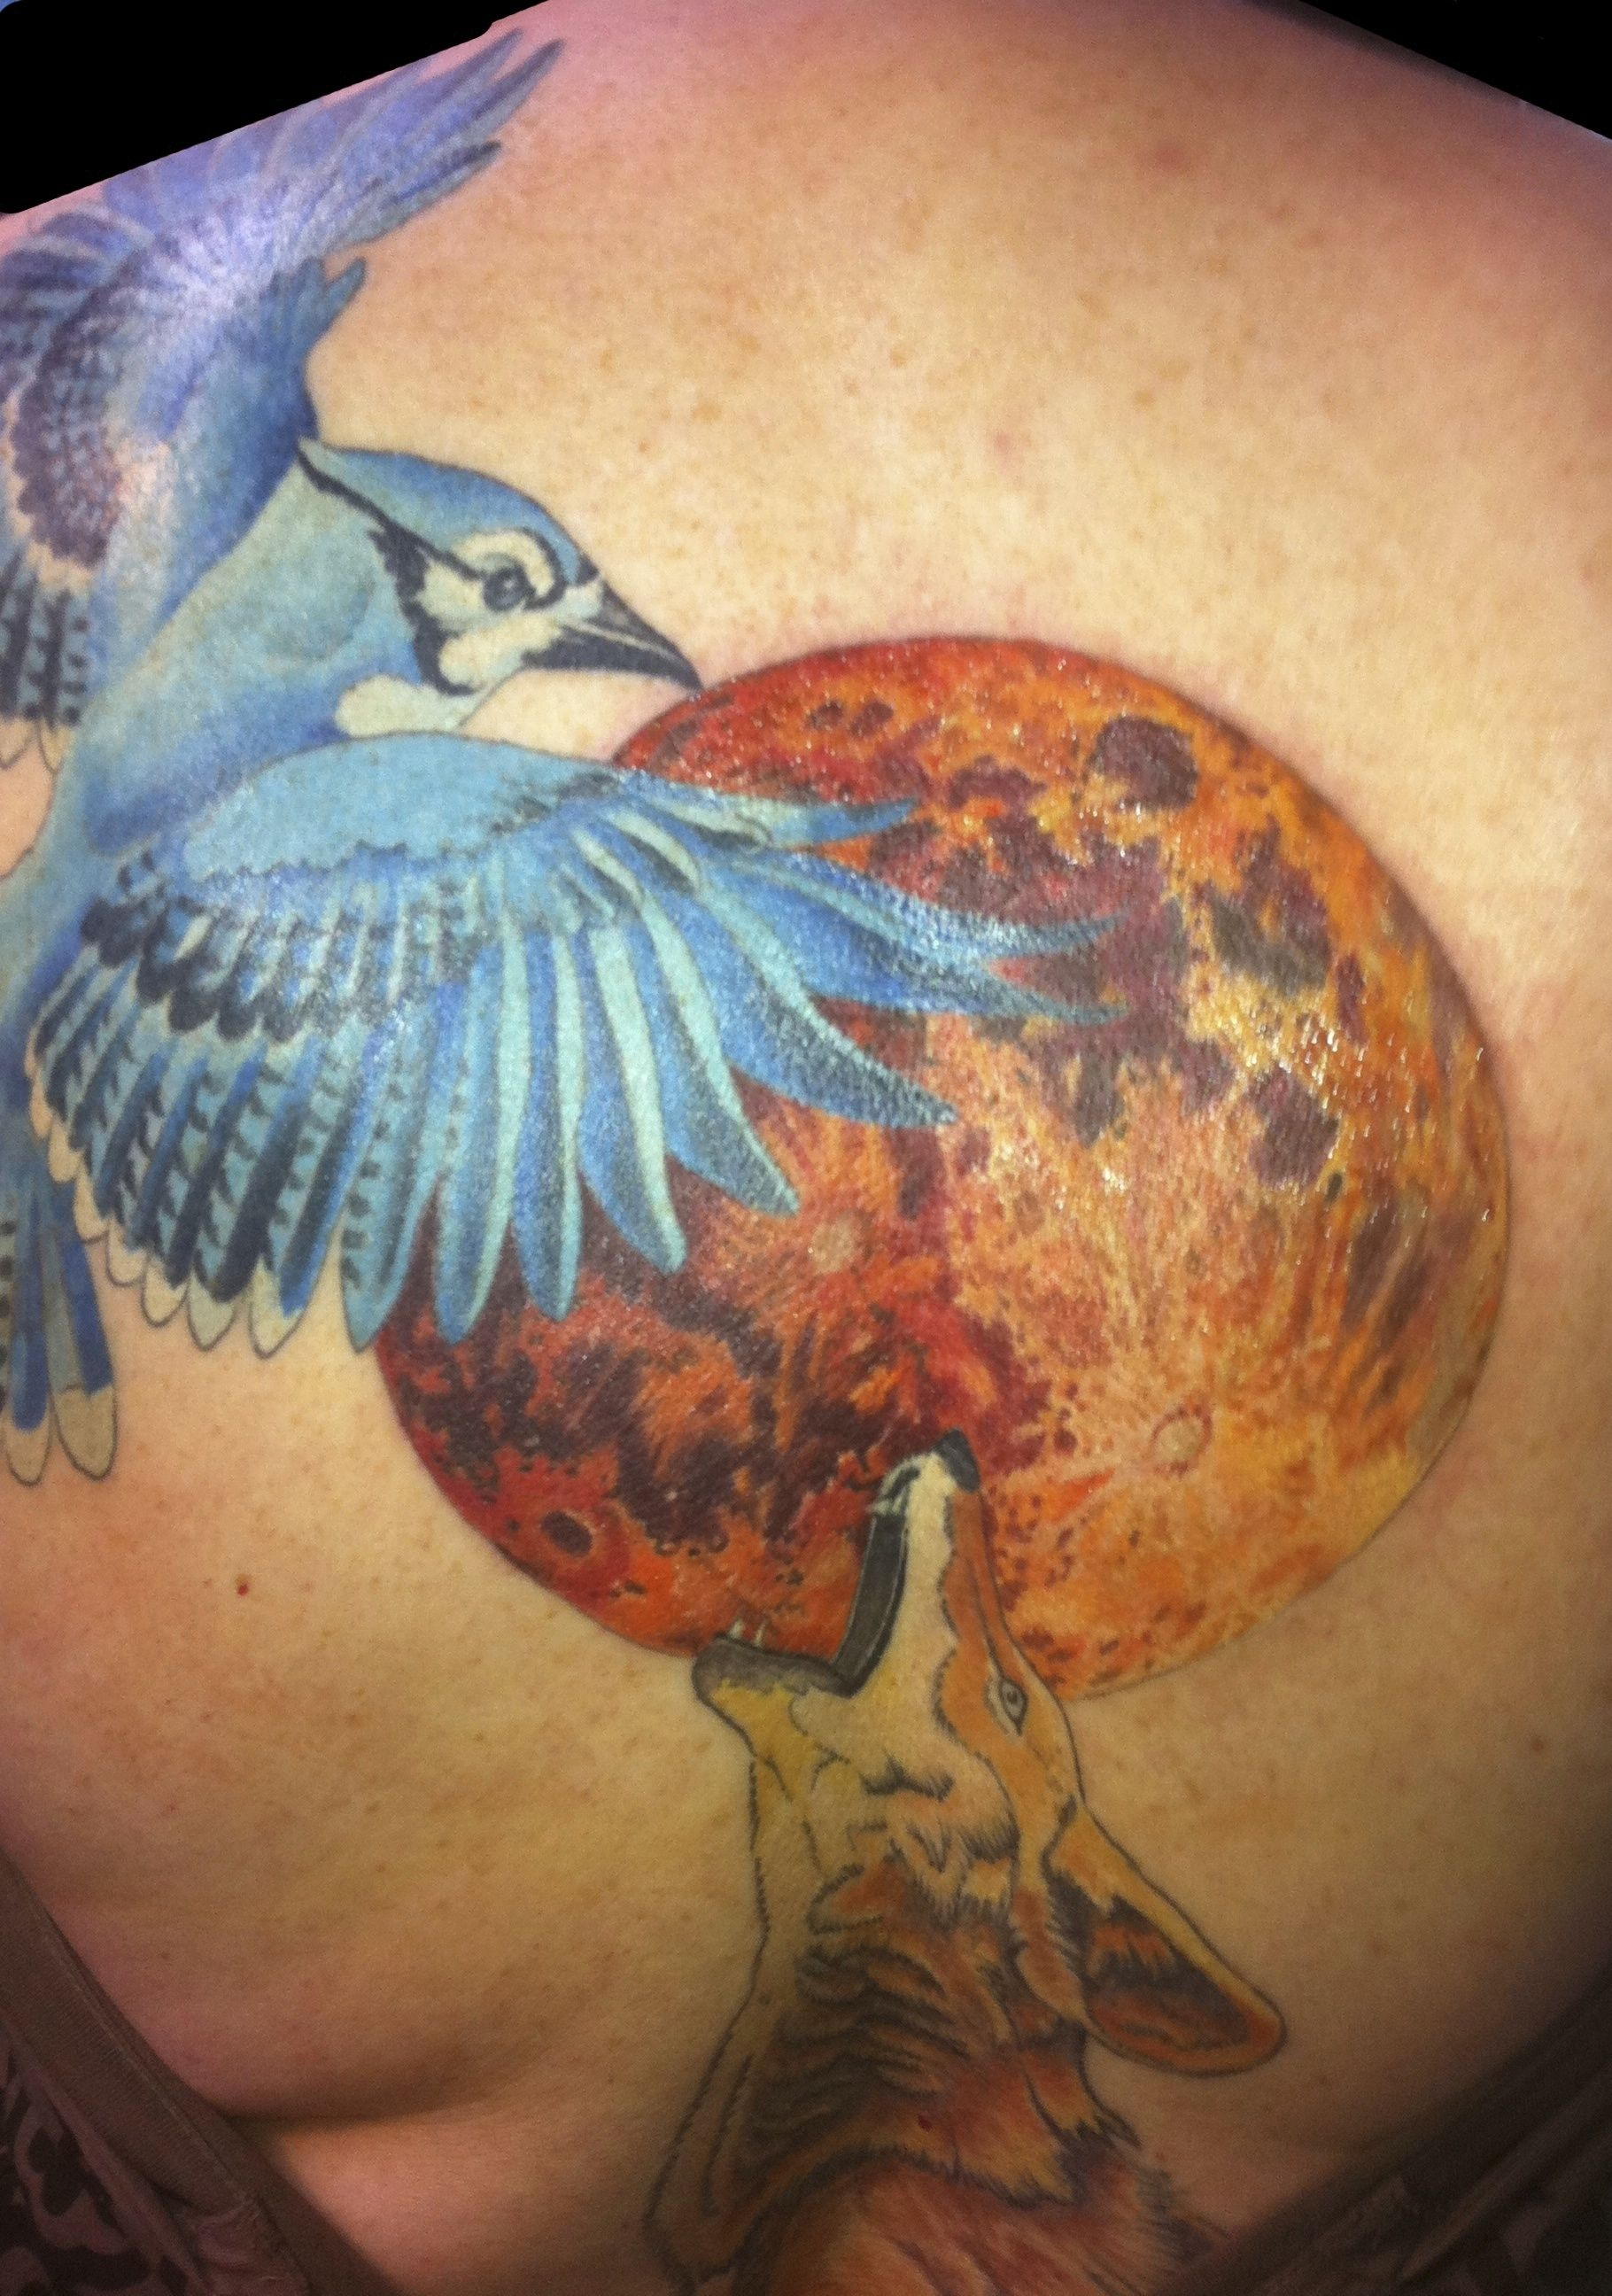 Tattoo by MrDavidPoe. Tattooing out of Moon Tattoo in